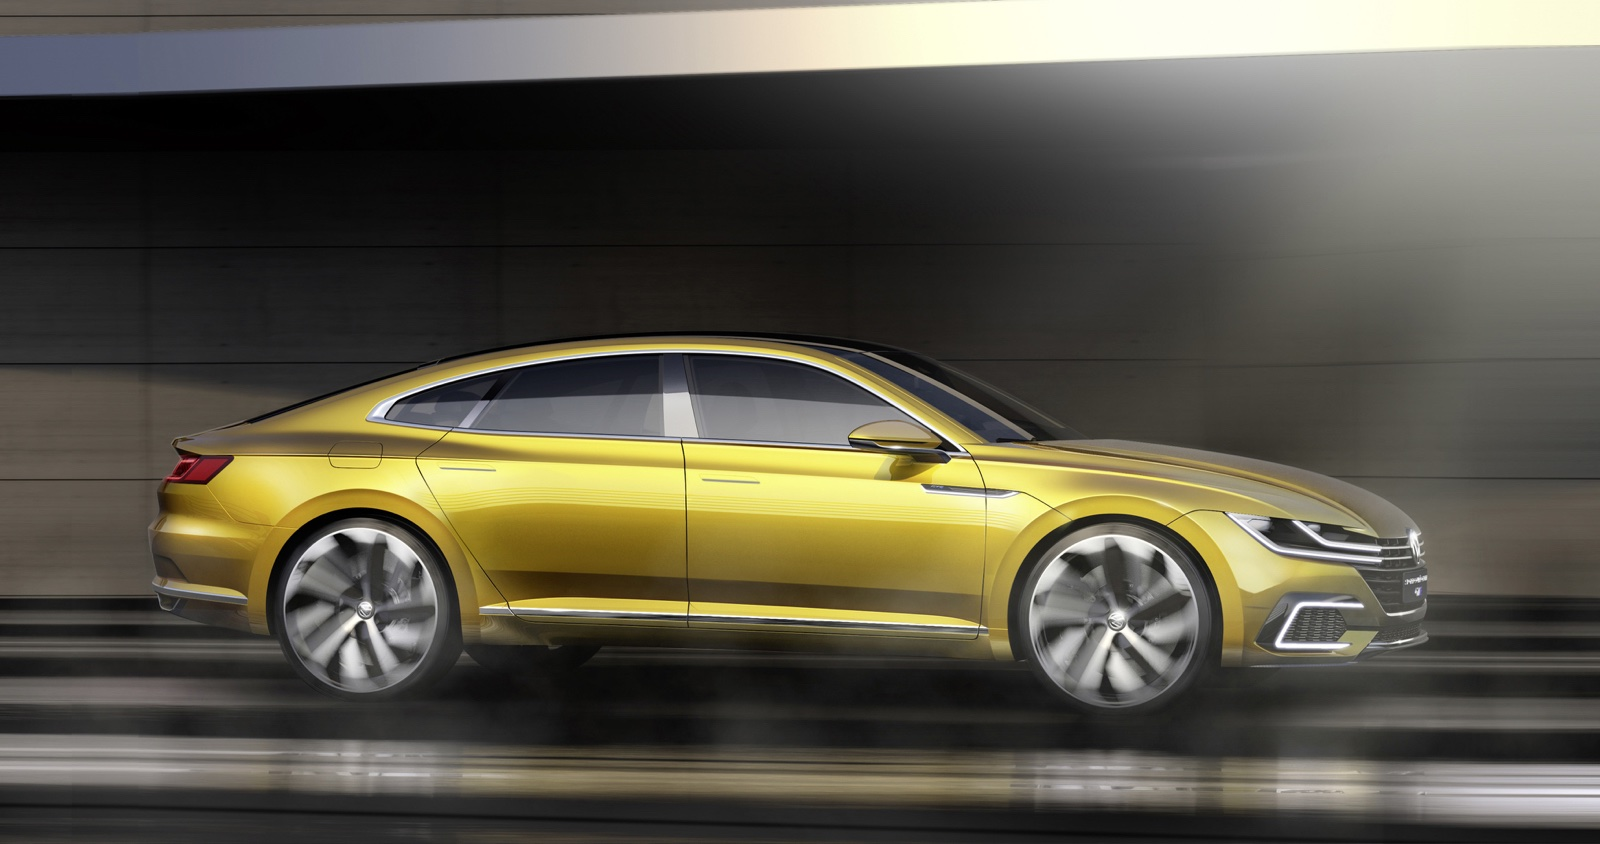 2019 Volkswagen Sport Coupe GTE Concept photo - 2